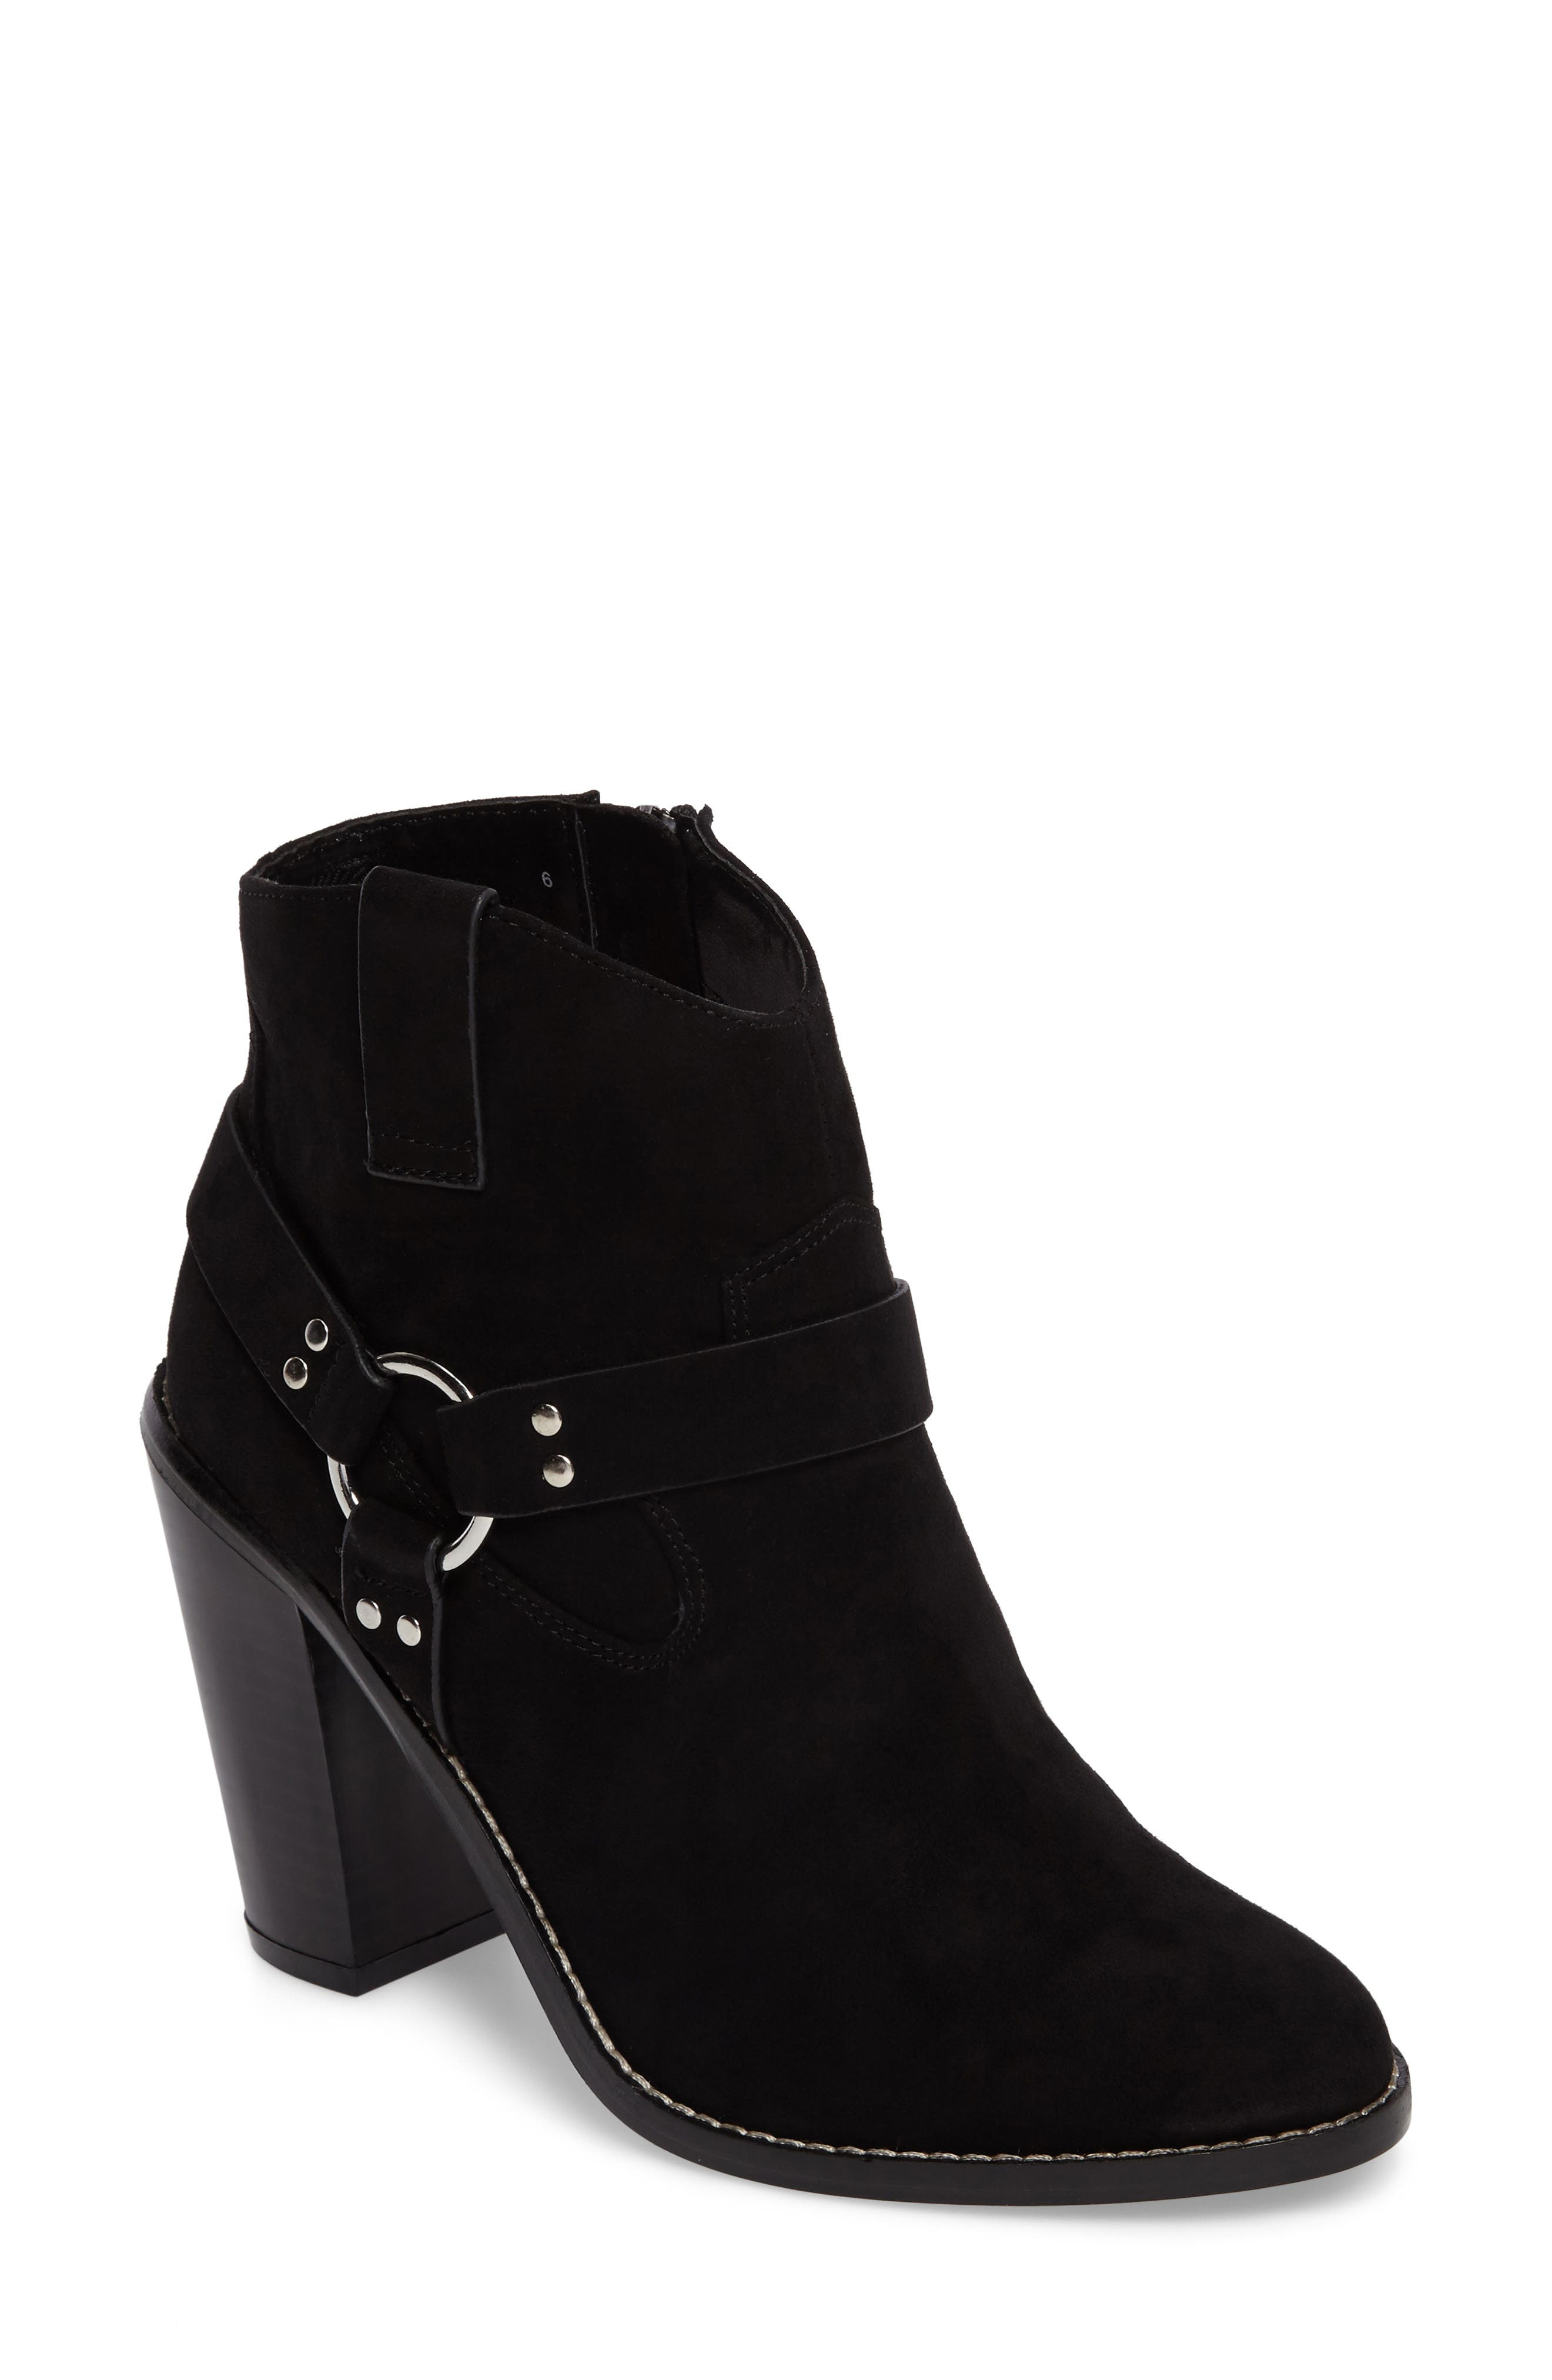 Fancye Ringed Ankle Strap Bootie,                             Main thumbnail 1, color,                             BLACK SYNTHETIC